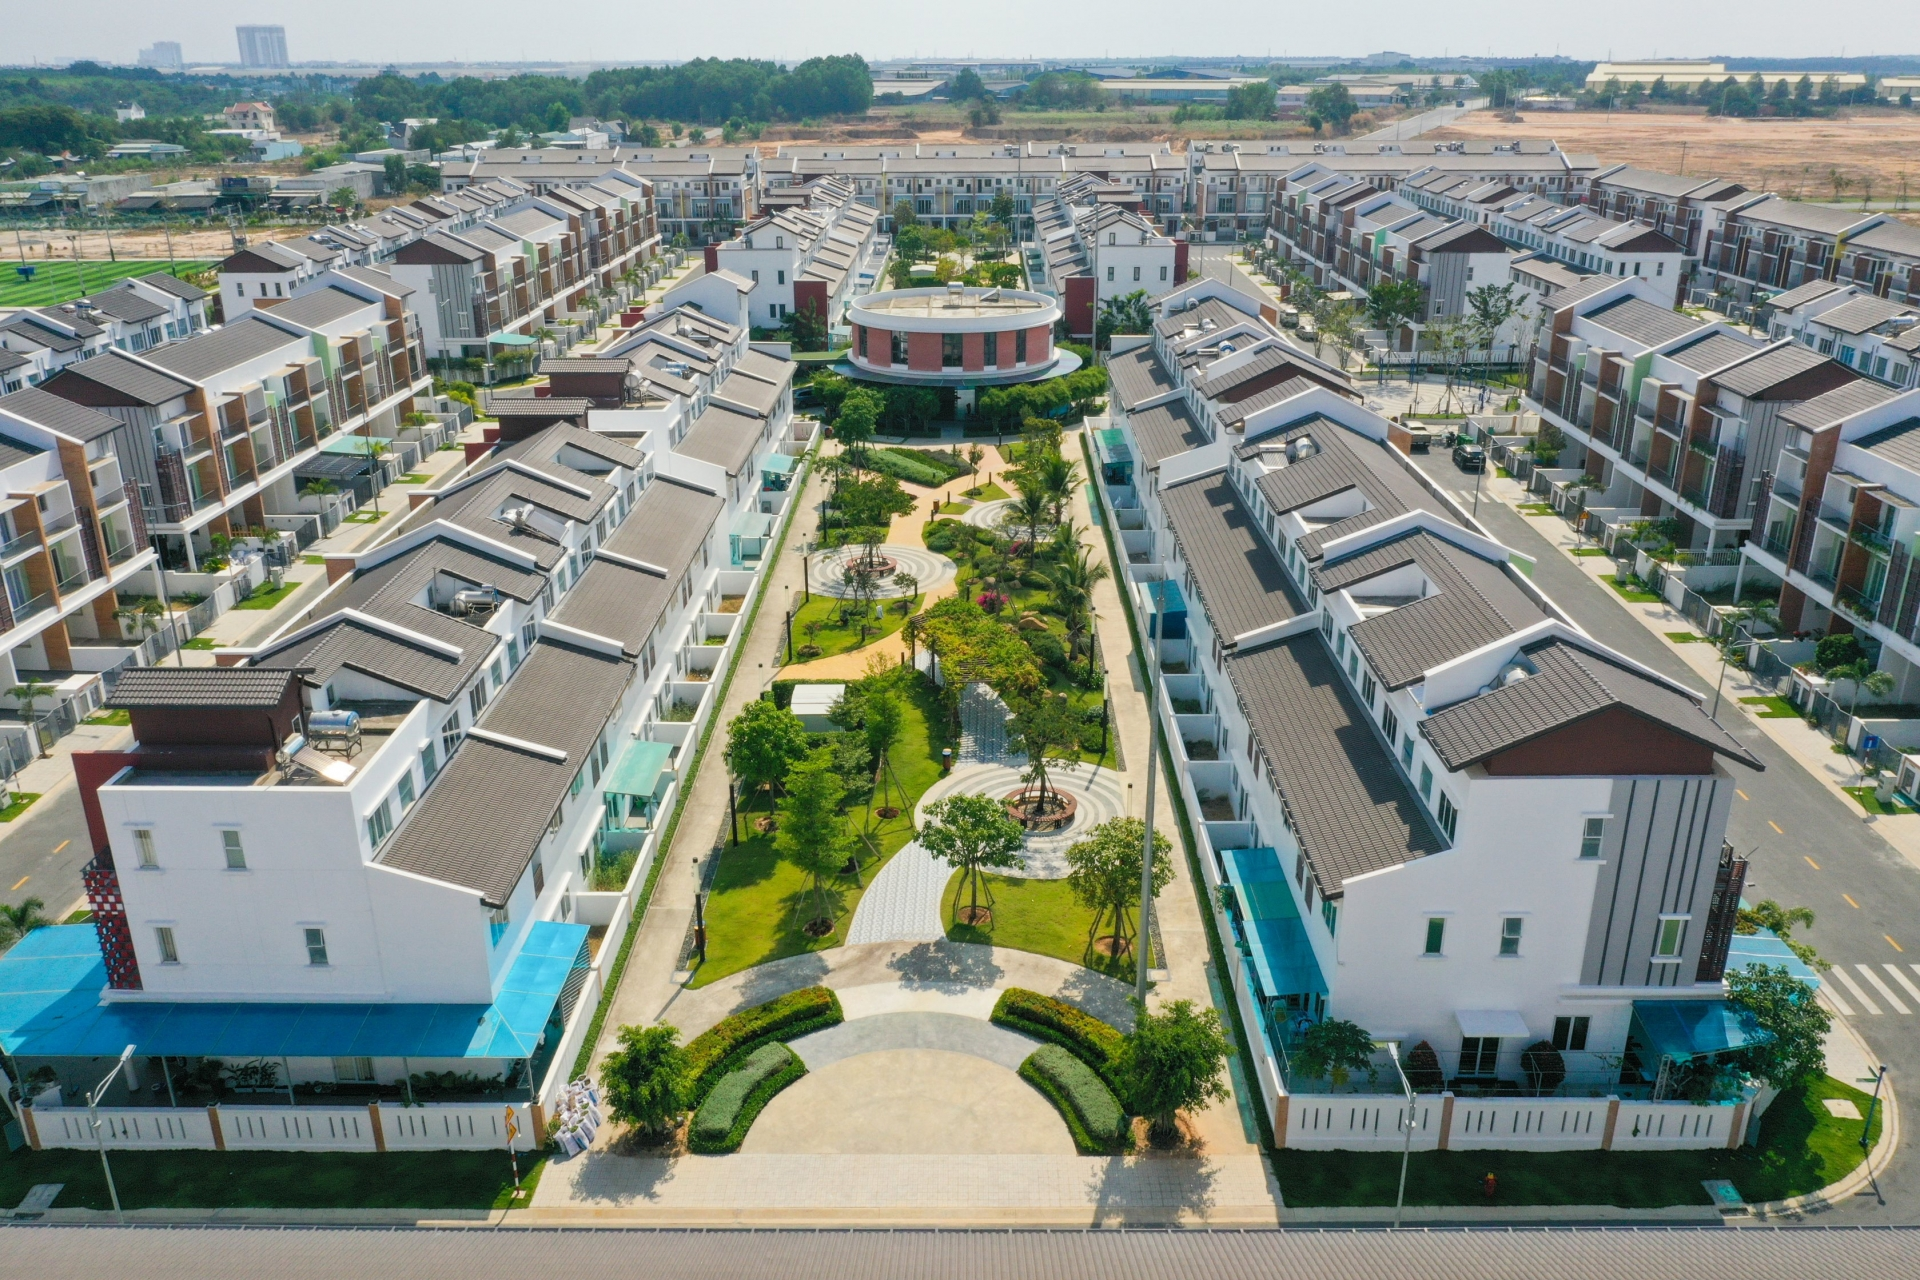 Sun Casa Central – Another successful housing project by VSIP in Binh Duong